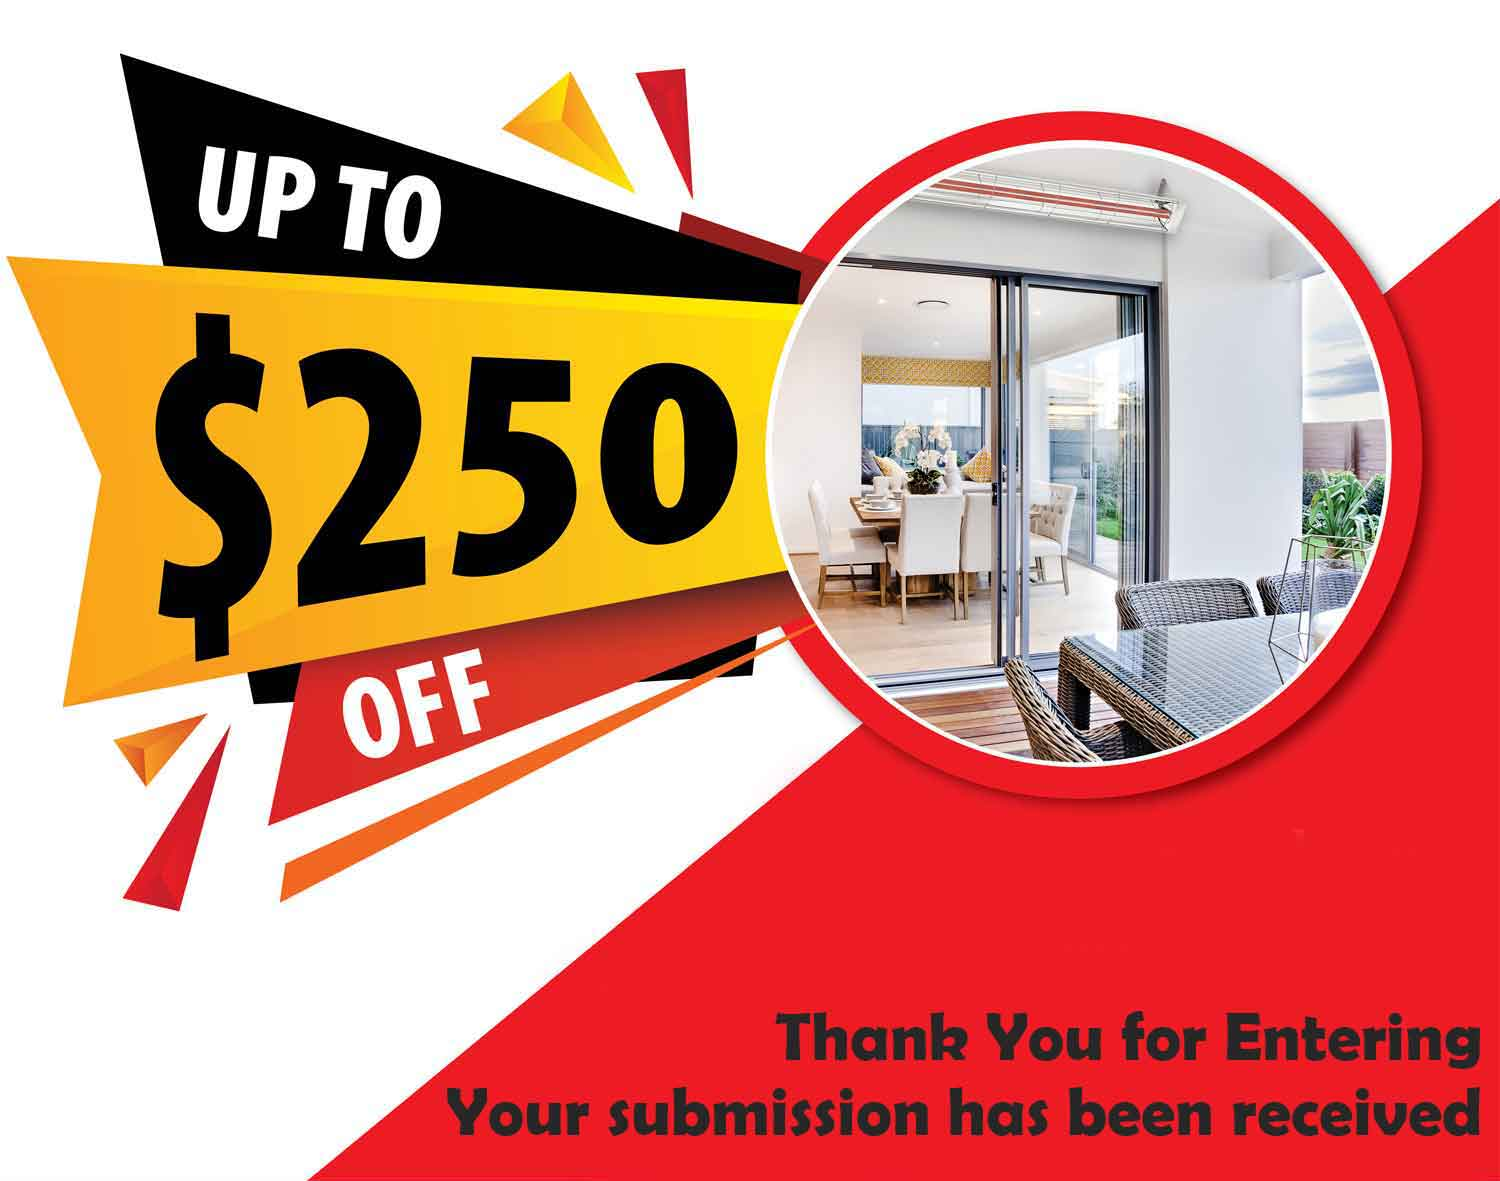 Cashback Offer - Up To $250 Off Selected Infratech Heaters